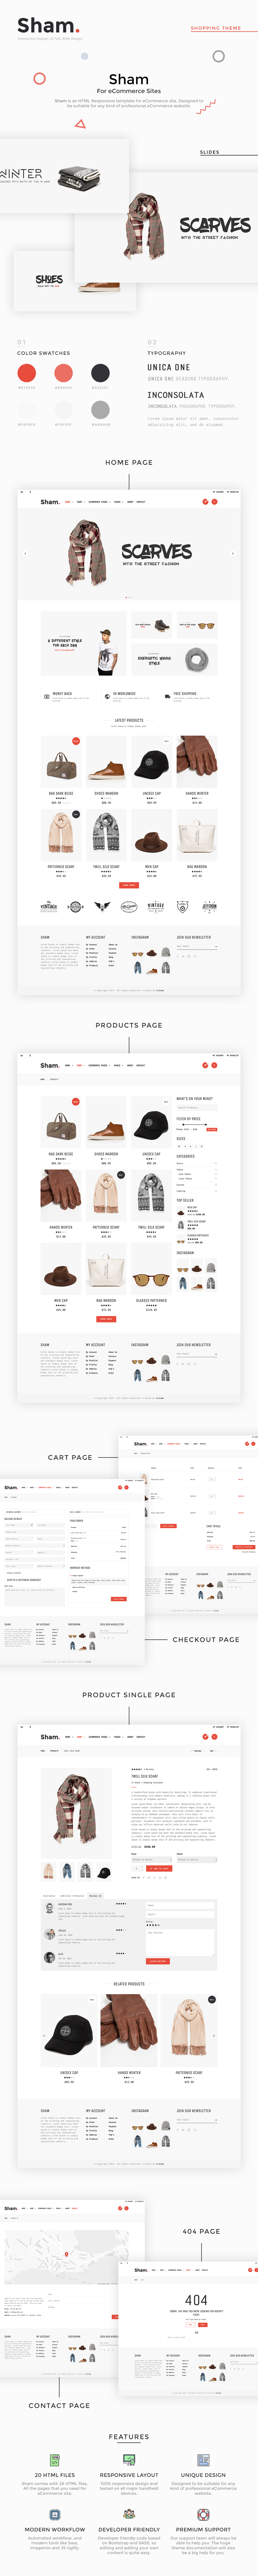 bootstrap chair clean creative Ecommerce furniture HTML Responsive shop Shopping store